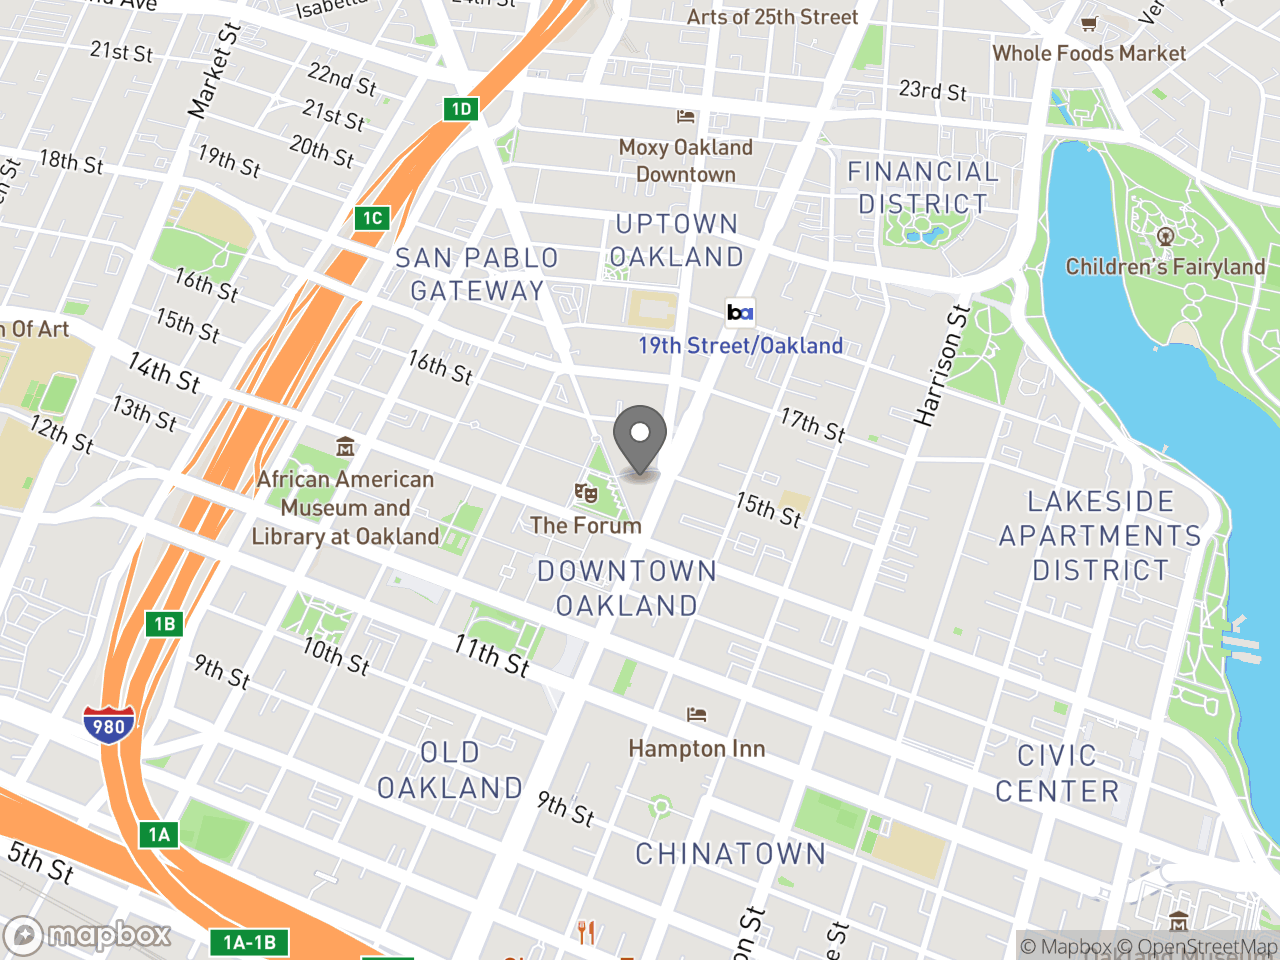 Map location for Information Technology, located at 150 Frank H Ogawa Plaza in Oakland, CA 94612